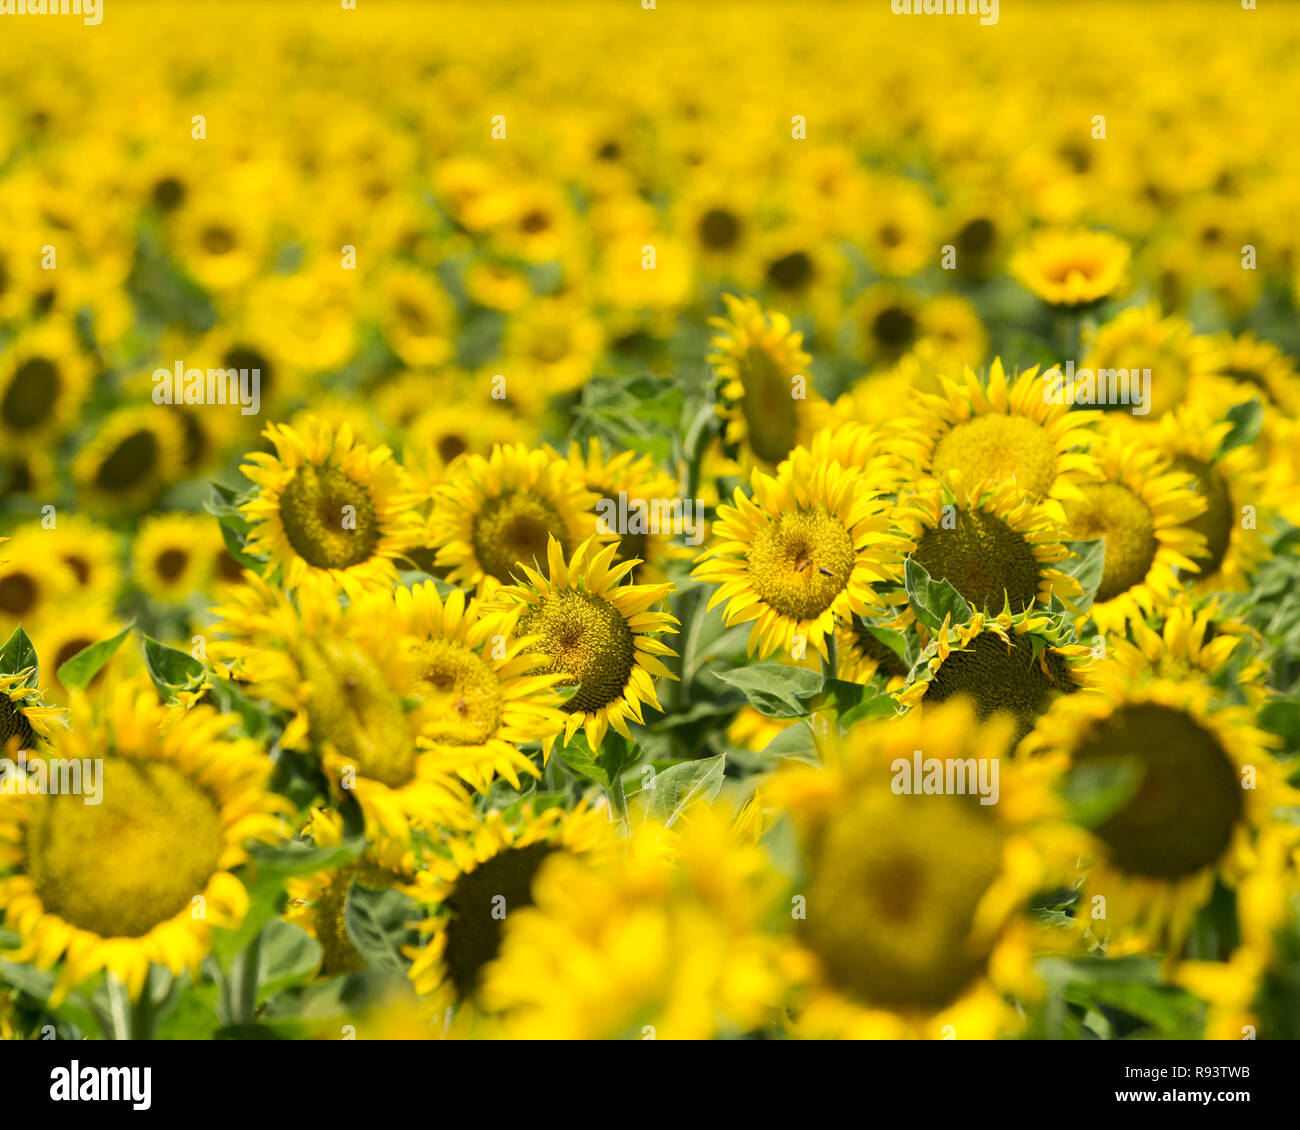 Sunny Disposition - Sunflower field glows happy yellow as far as the eye can see. Yolo County, California, USA - Stock Image